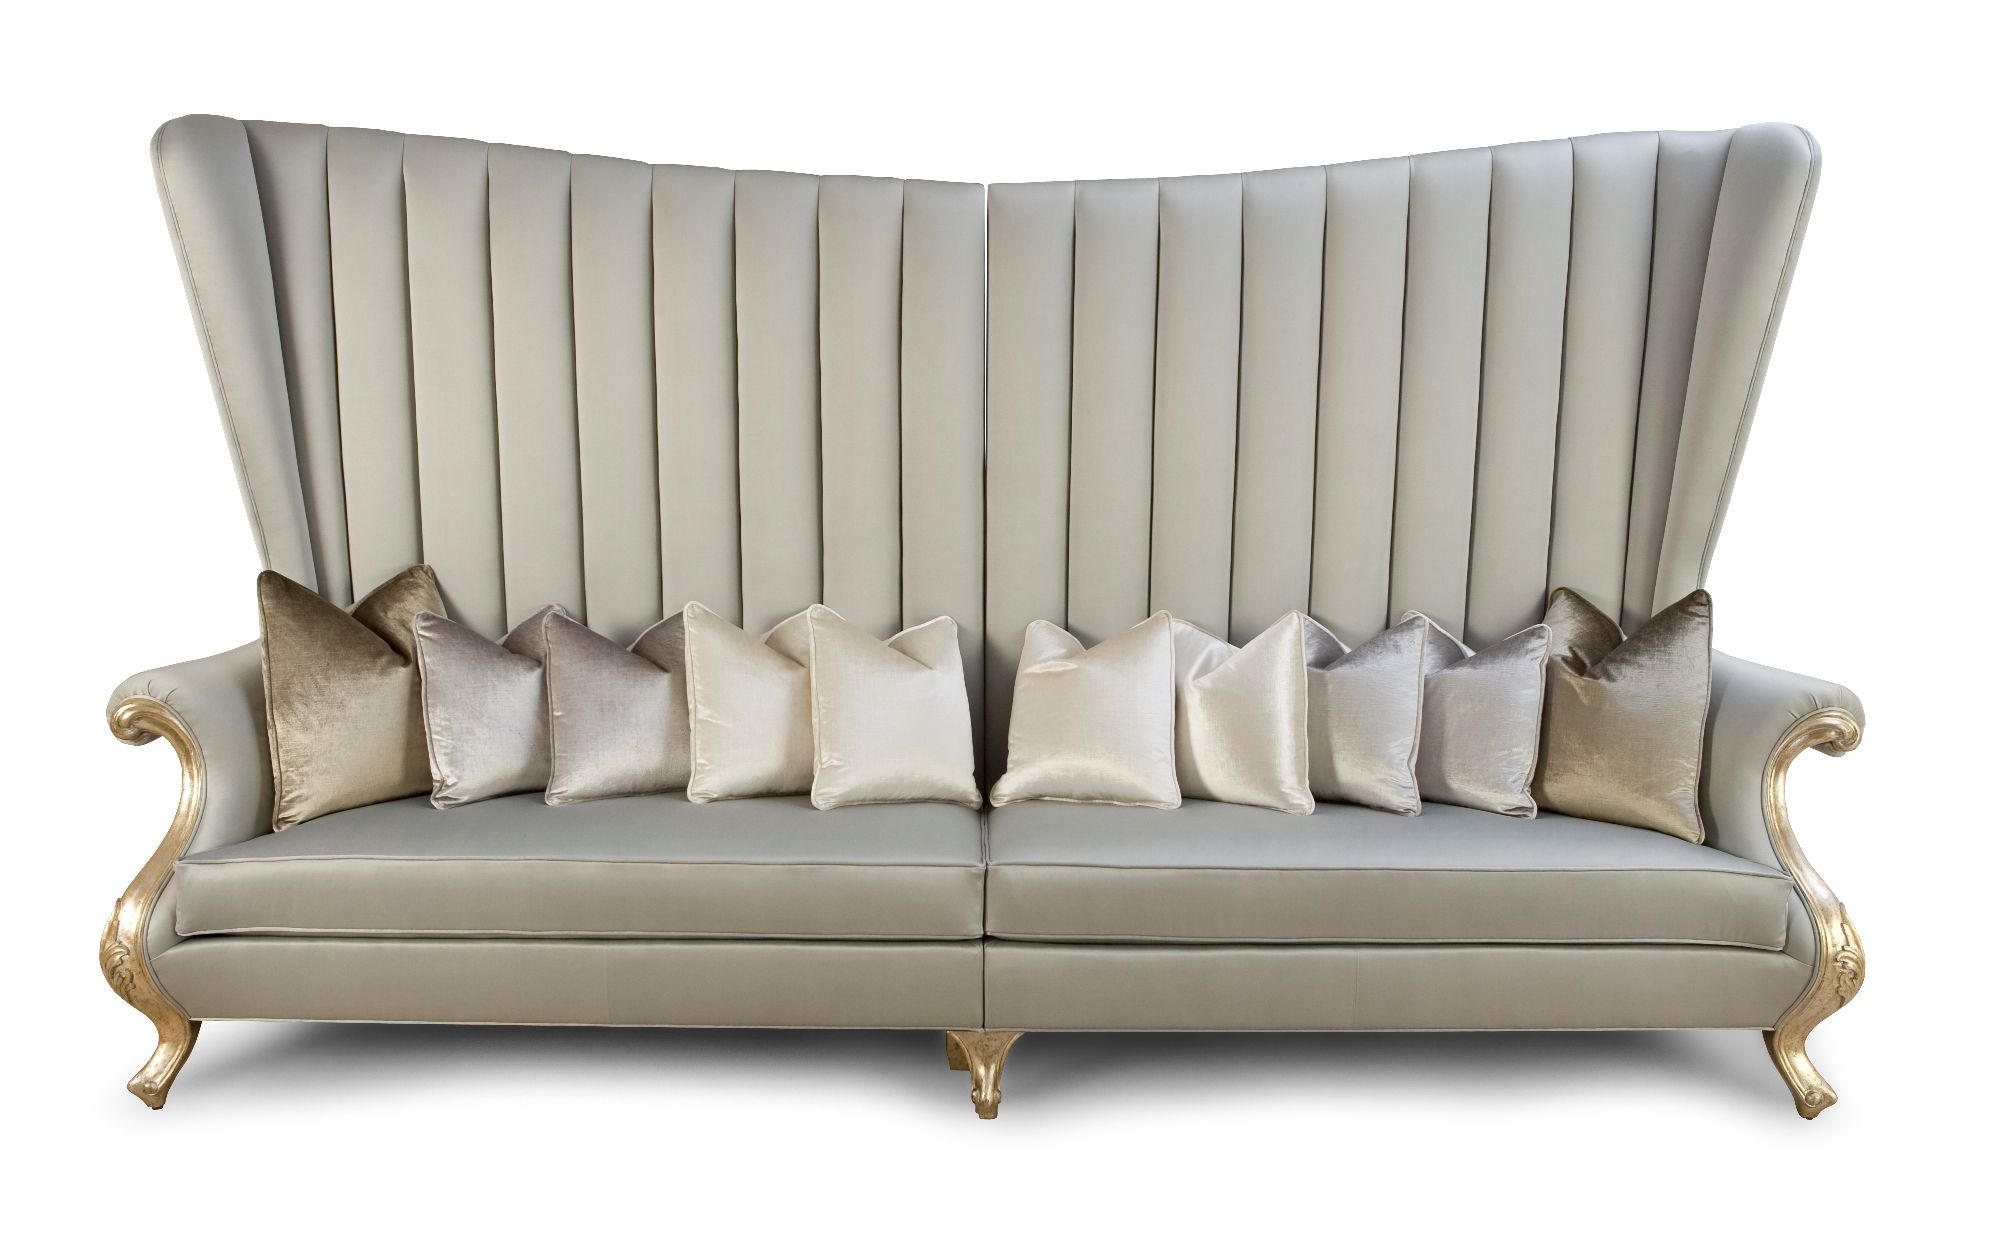 High back sofa Christopher Guy 01椅 Pinterest